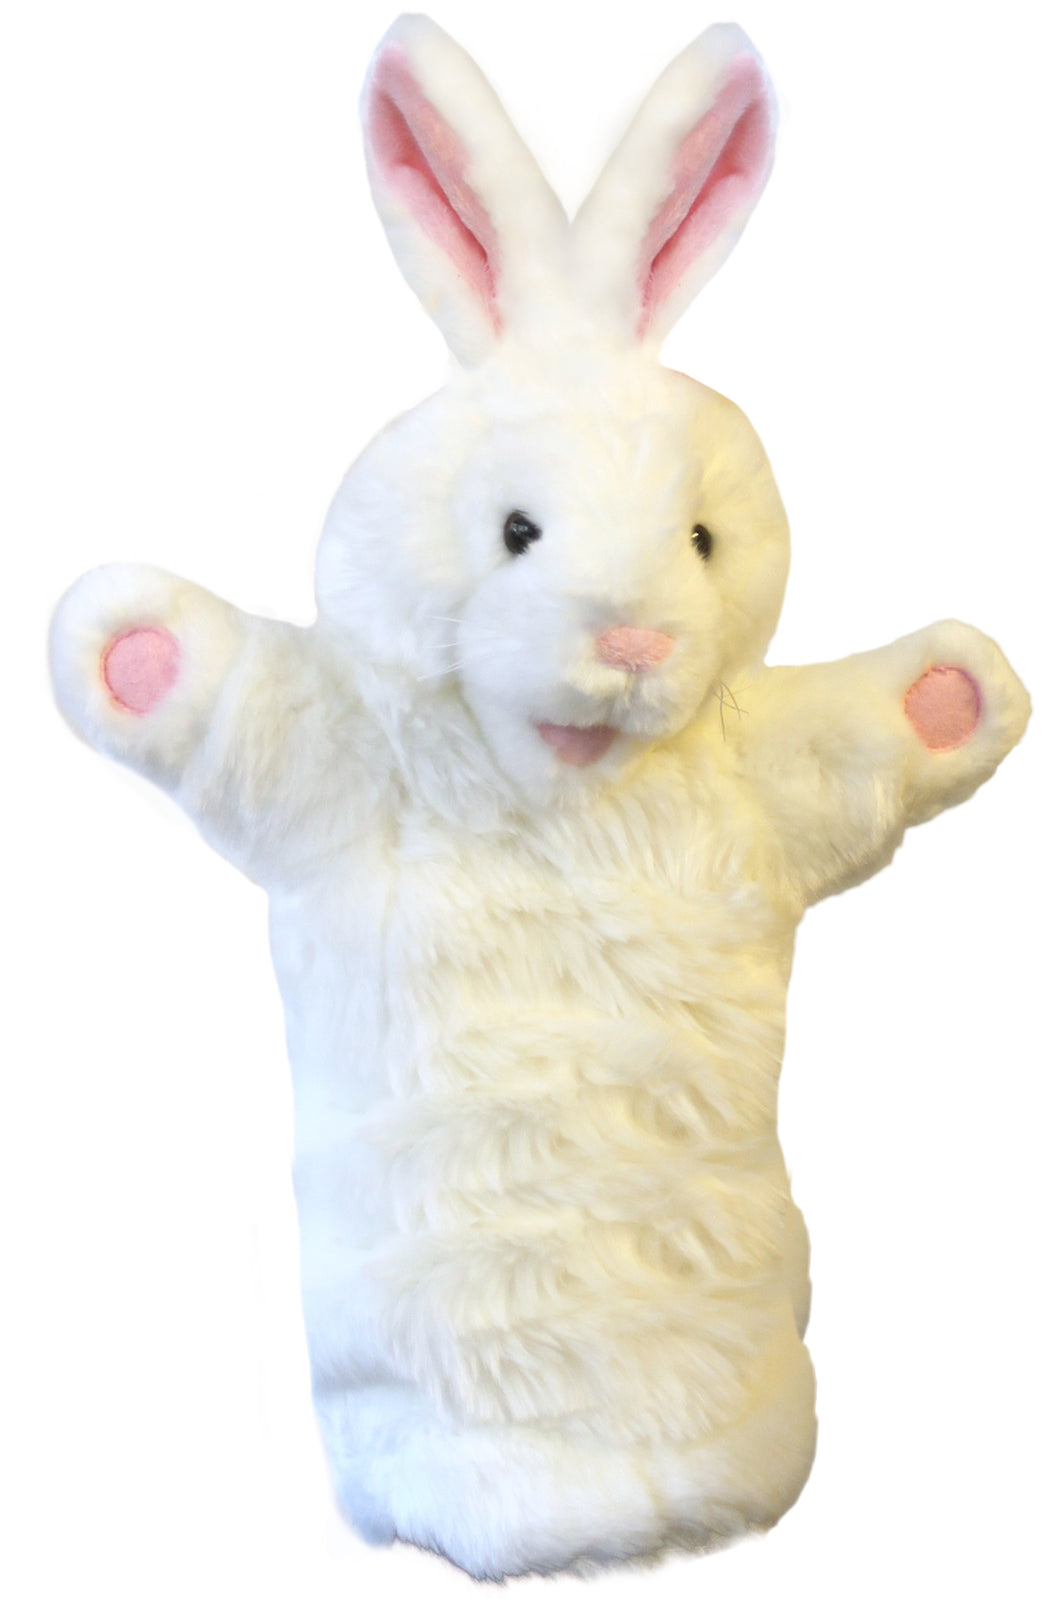 P383-PC006029-marionnette-Lapin-Blanc-The-Puppet-Company-Long-Sleeved-Glove-Puppets